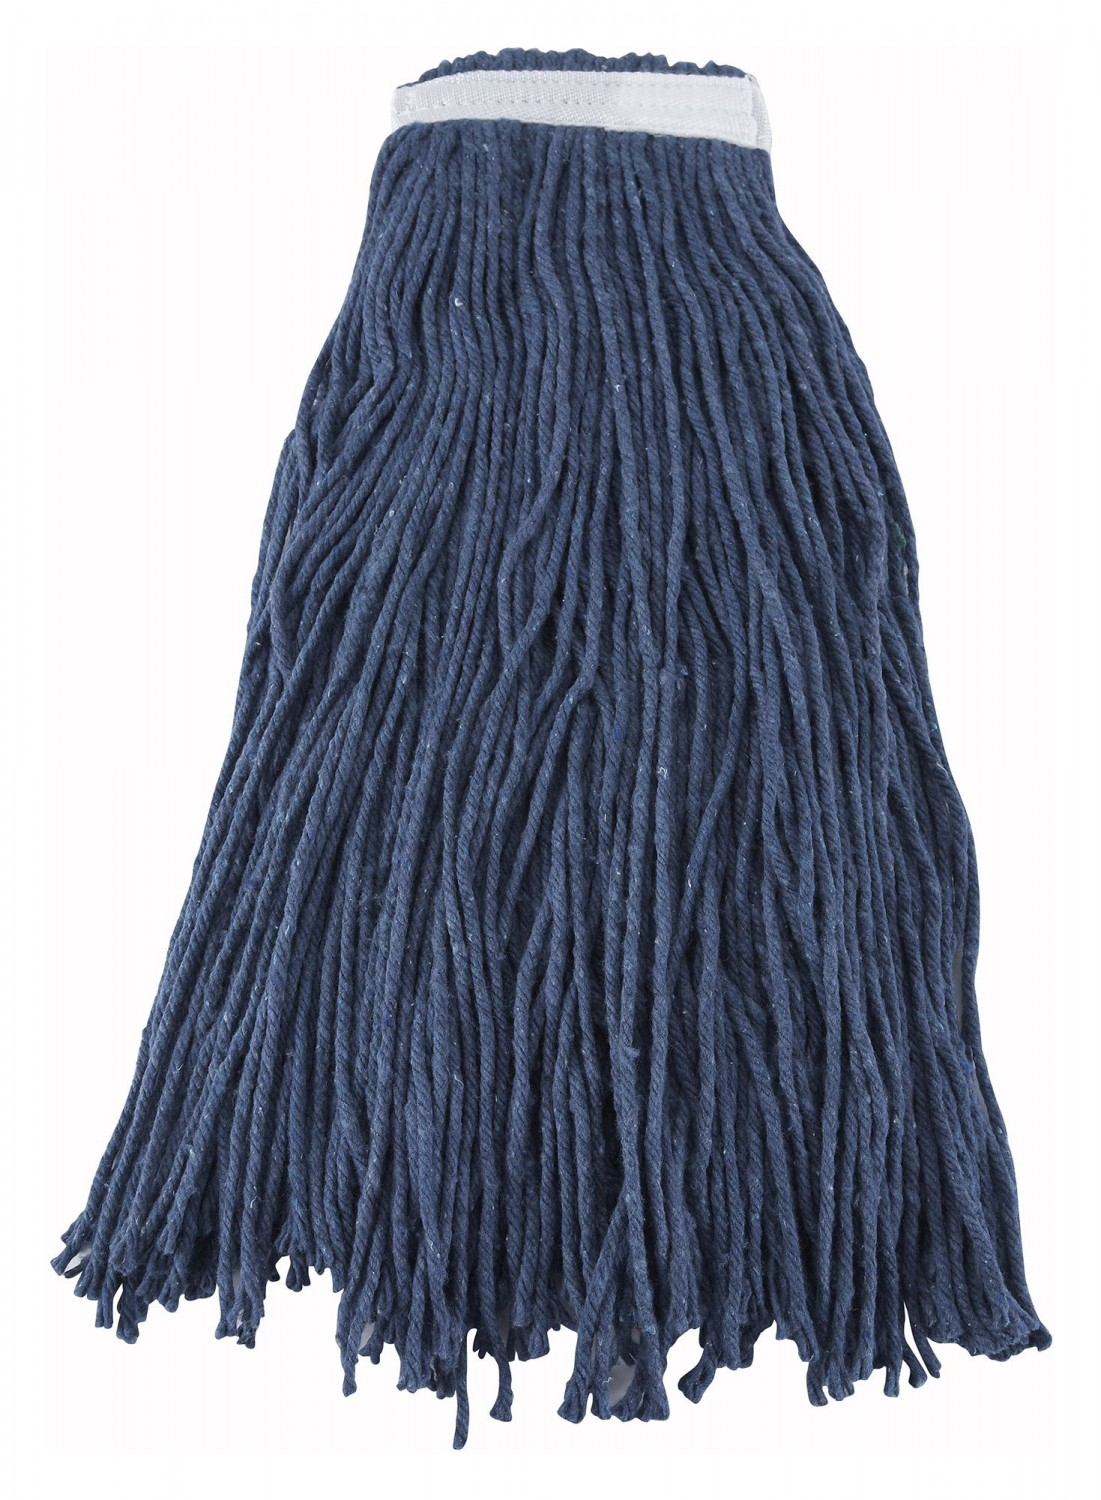 Winco MOP-32C Blue Wet Mop Head with Cut End 32 oz.